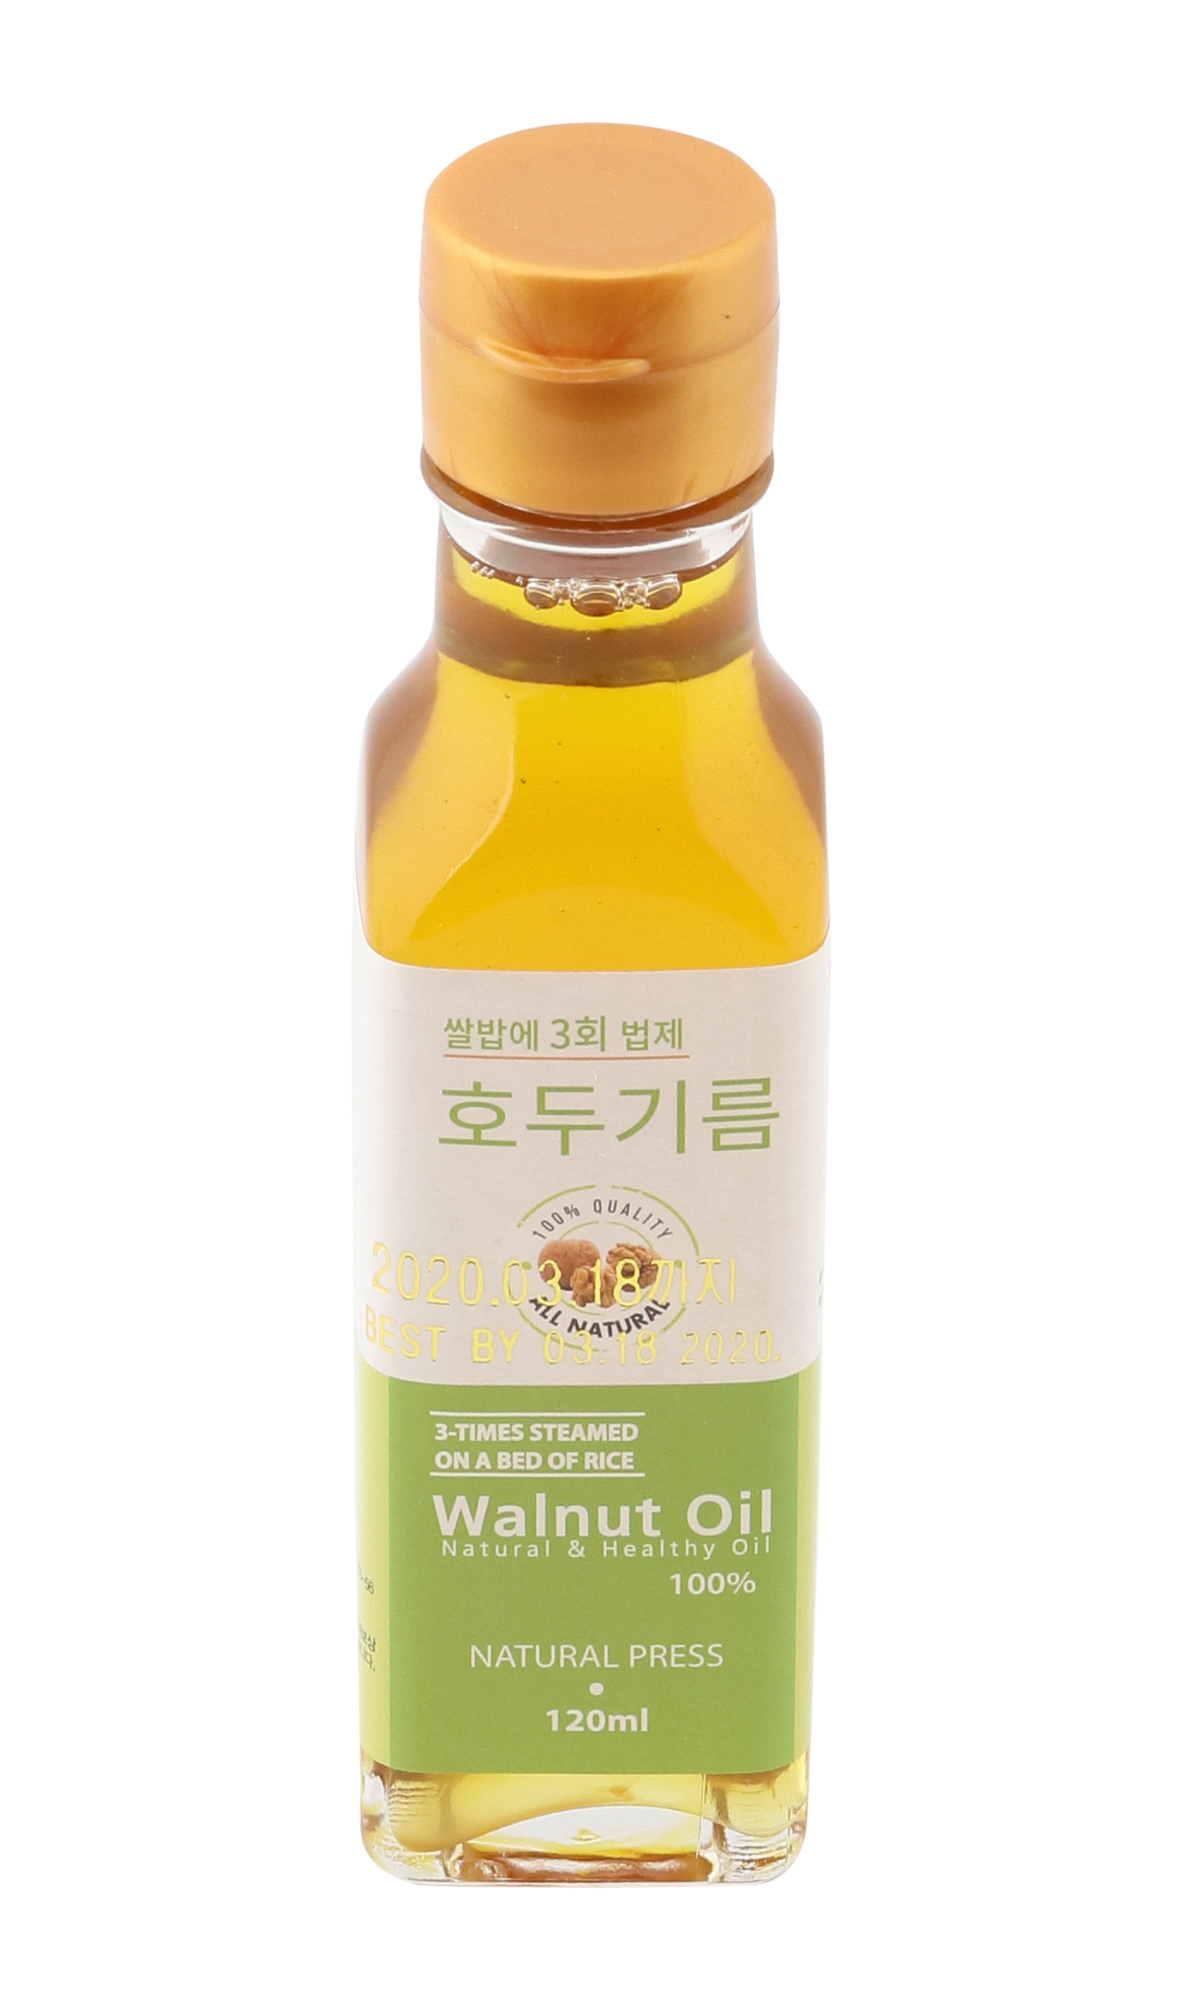 Walnut Oil (3 times steamed on a bed of rice)